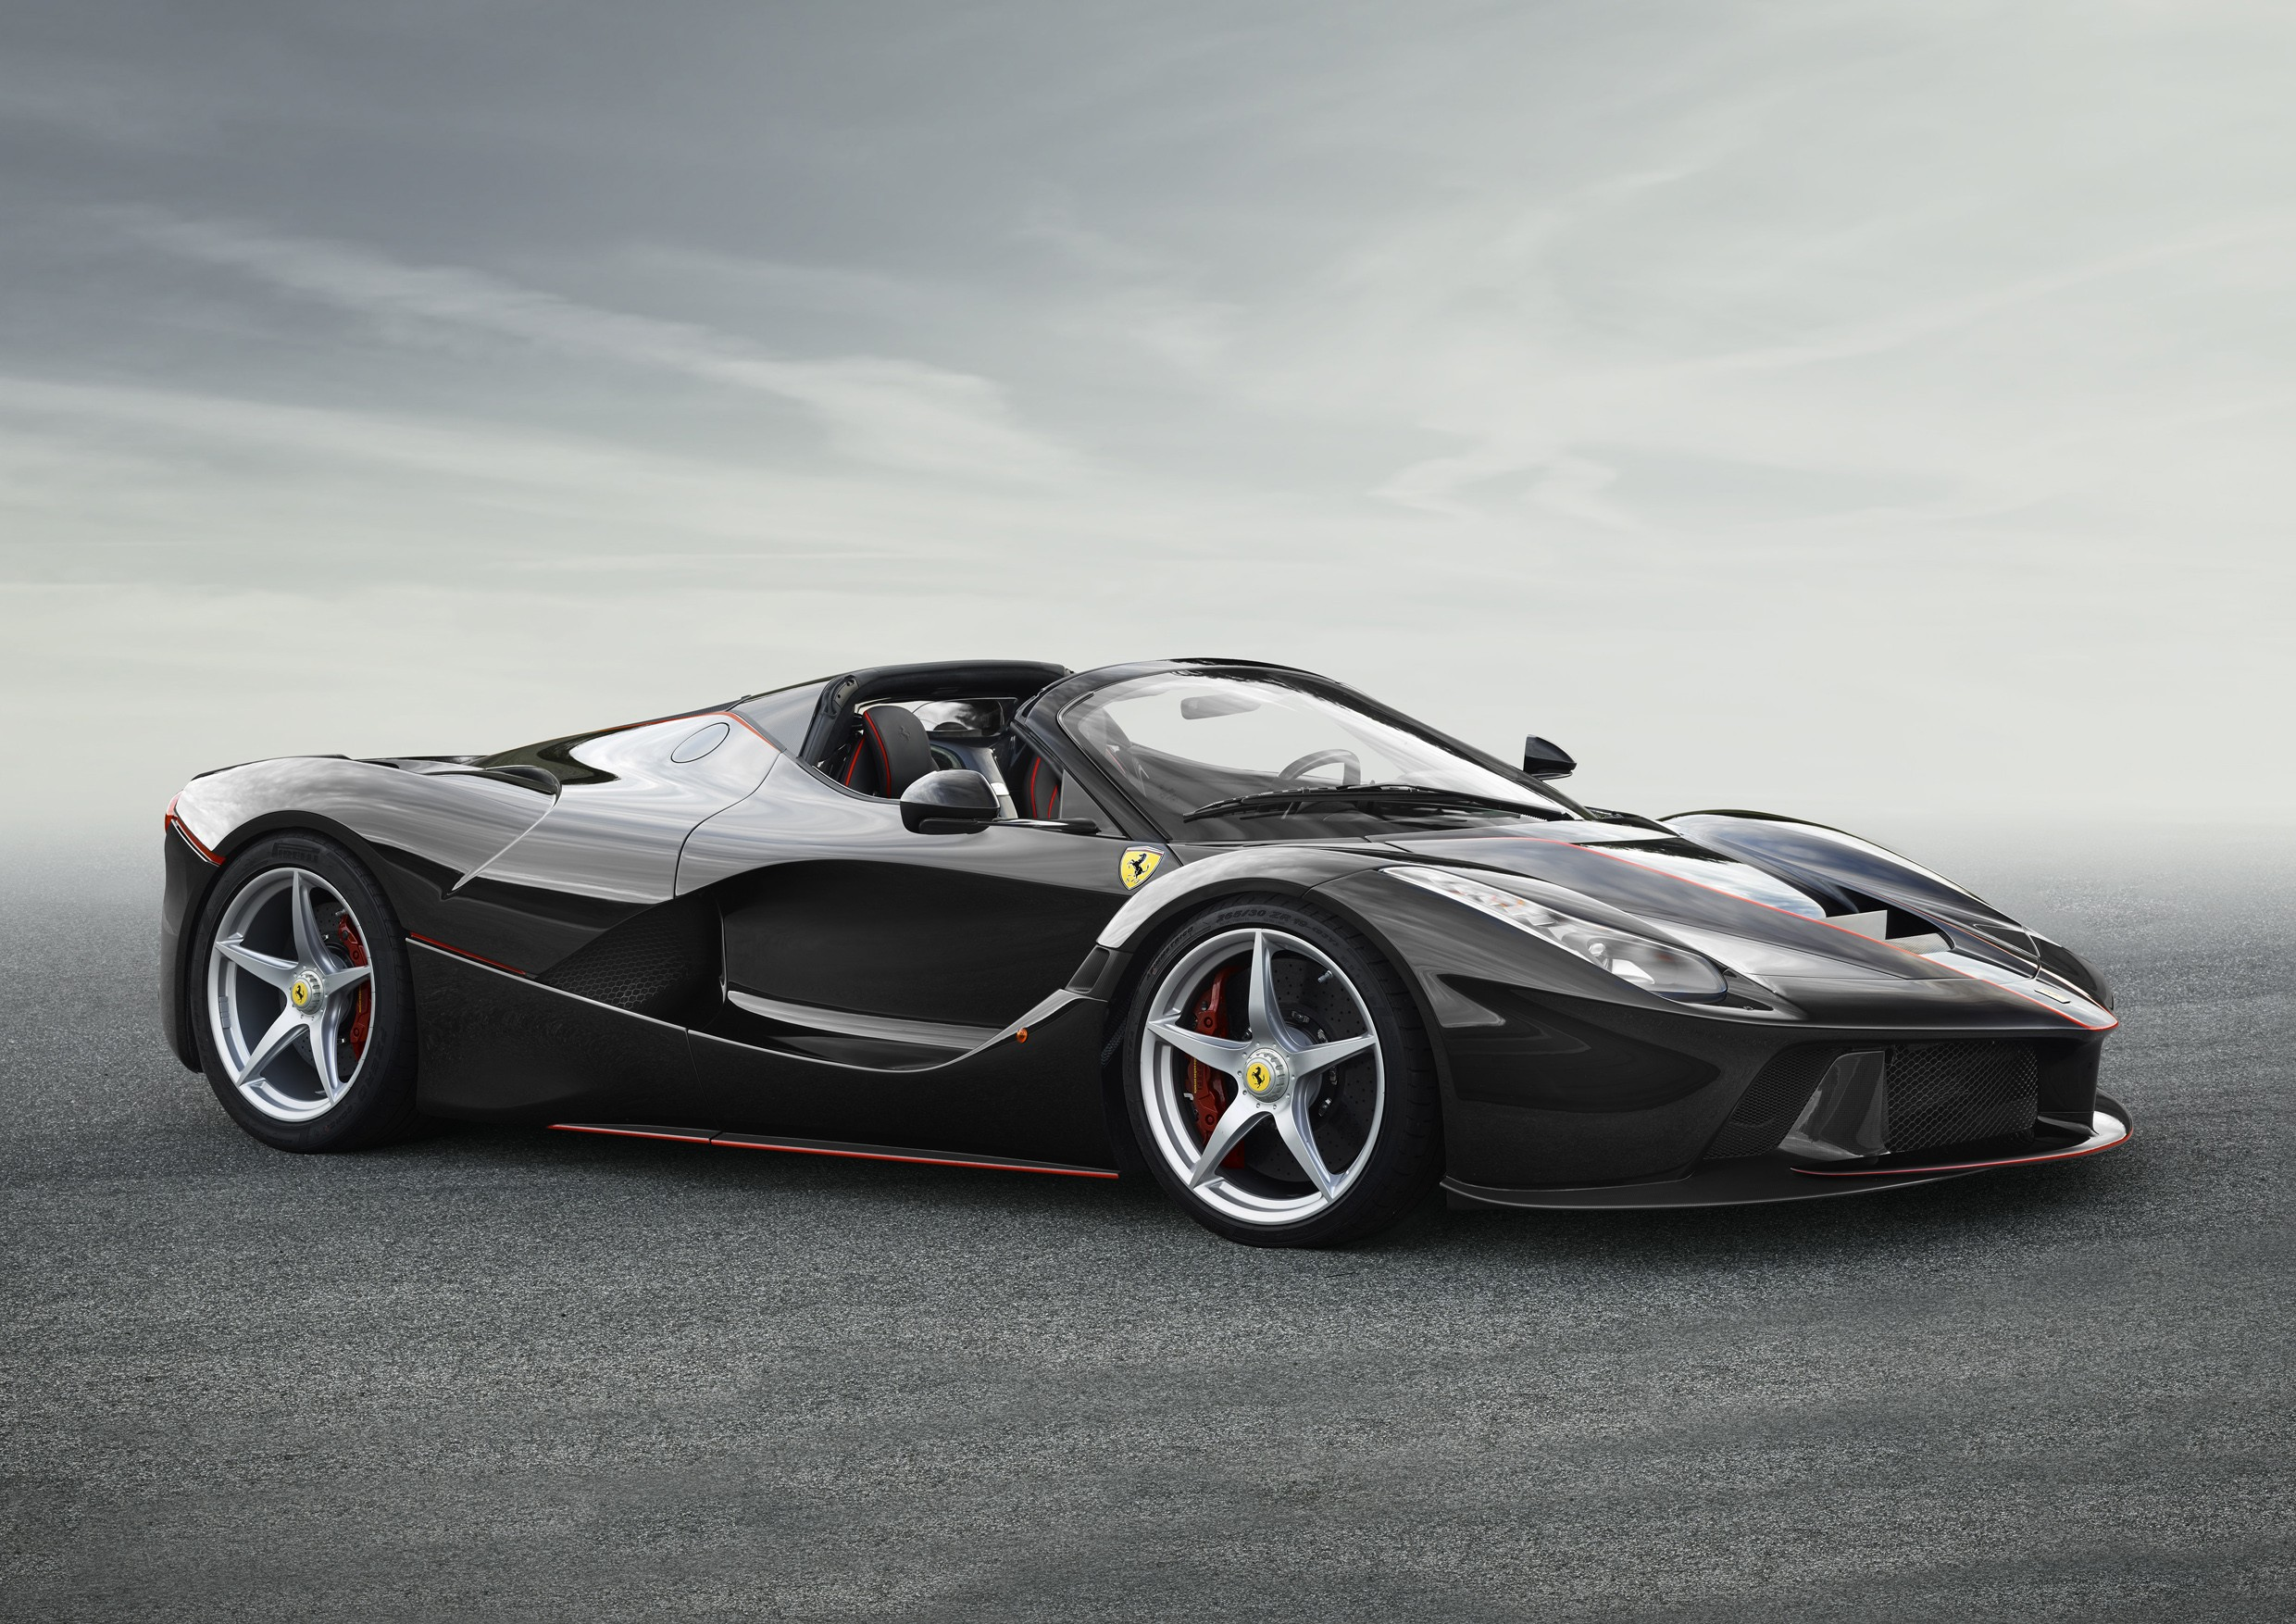 2017 laferrari aperta photos released won 39 t be called spider autoevolution. Black Bedroom Furniture Sets. Home Design Ideas